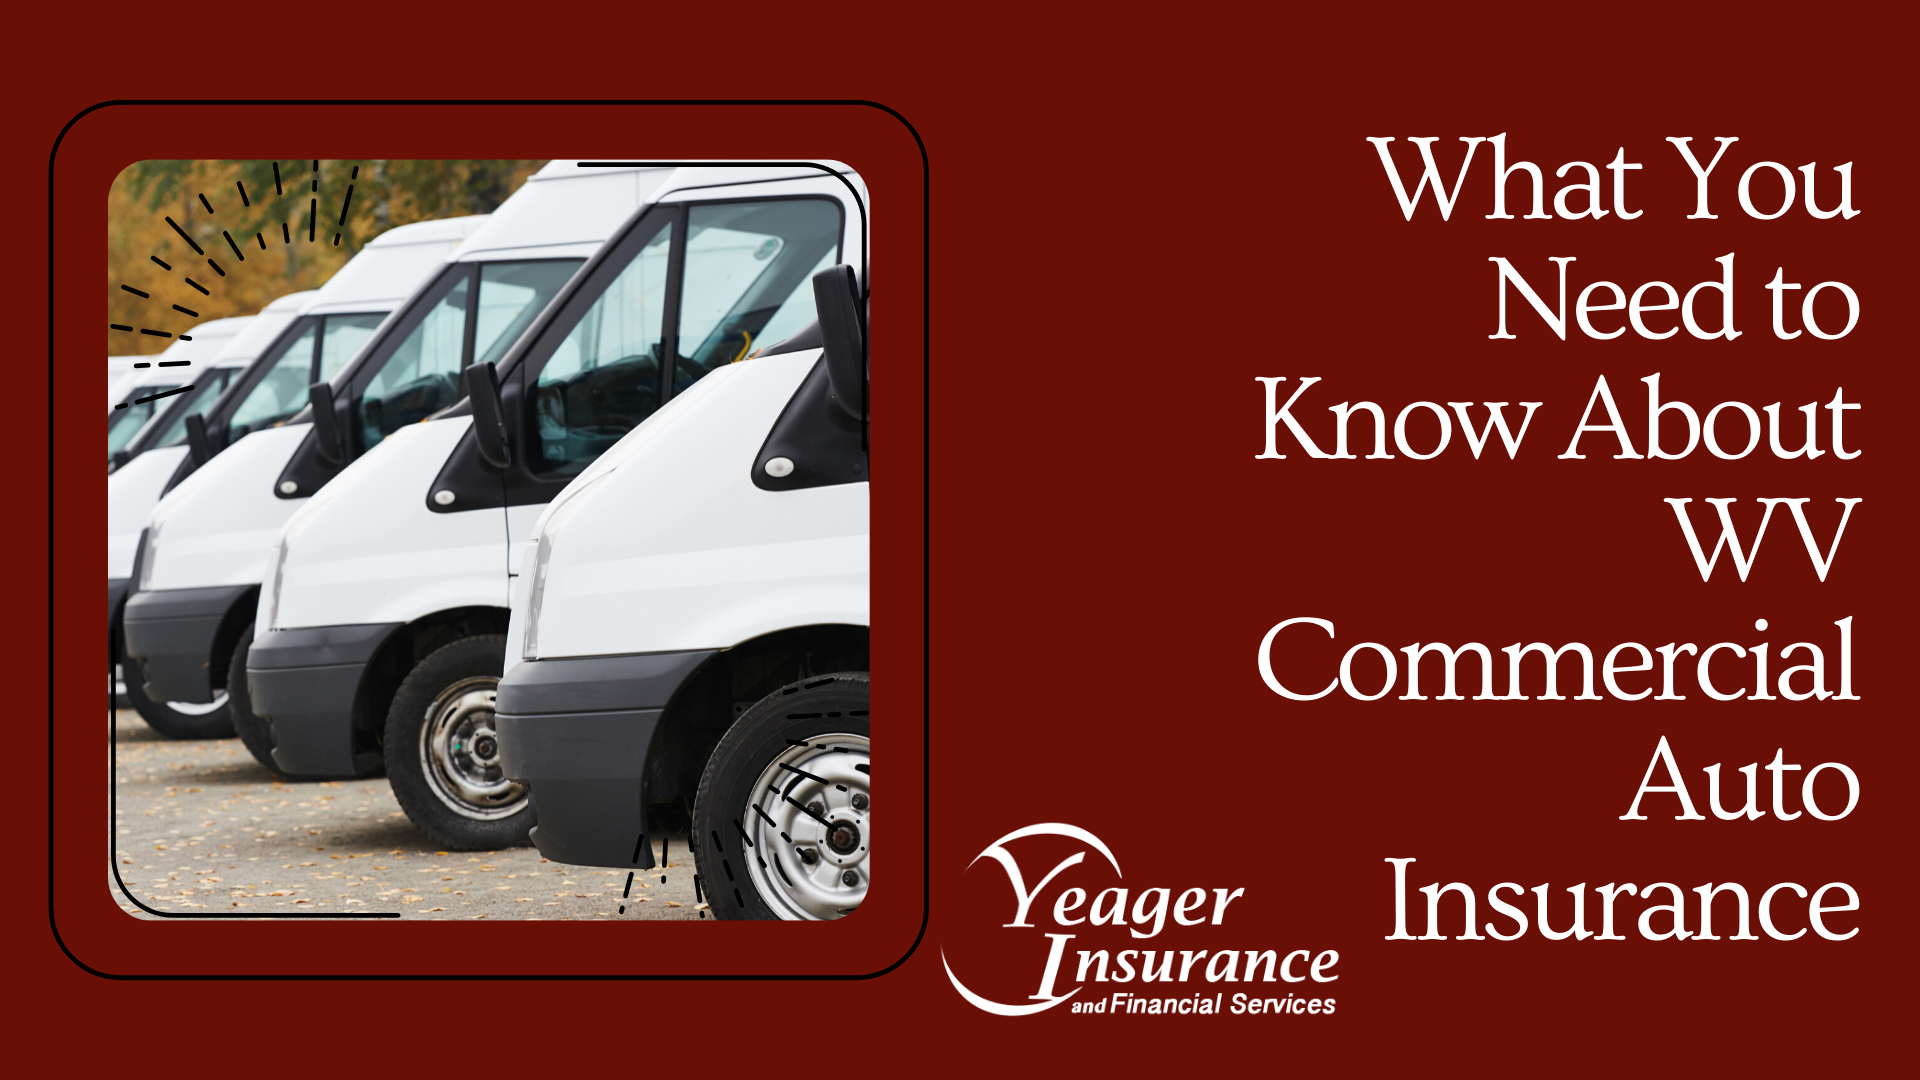 What You Need to Know About WV Commercial Auto Insurance